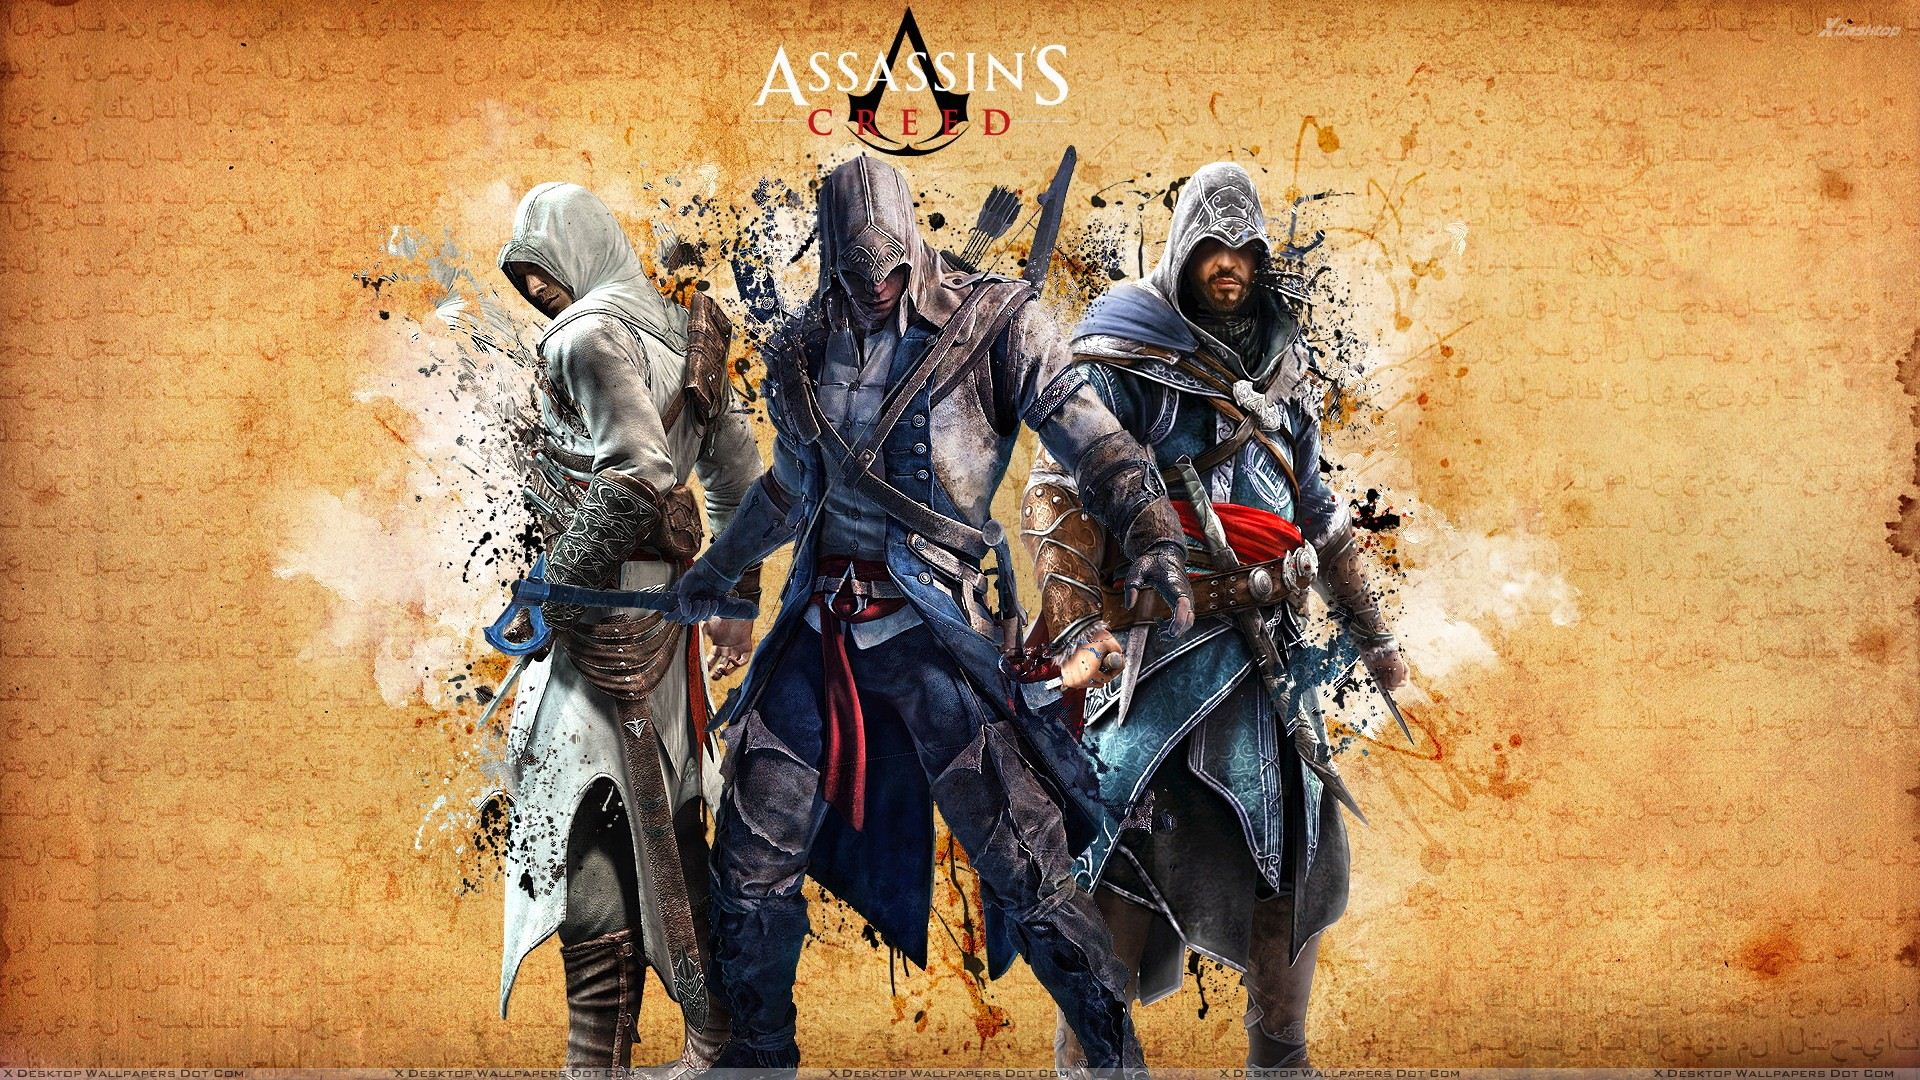 Assassins Creed All Characters Wallpaper 1920x1080